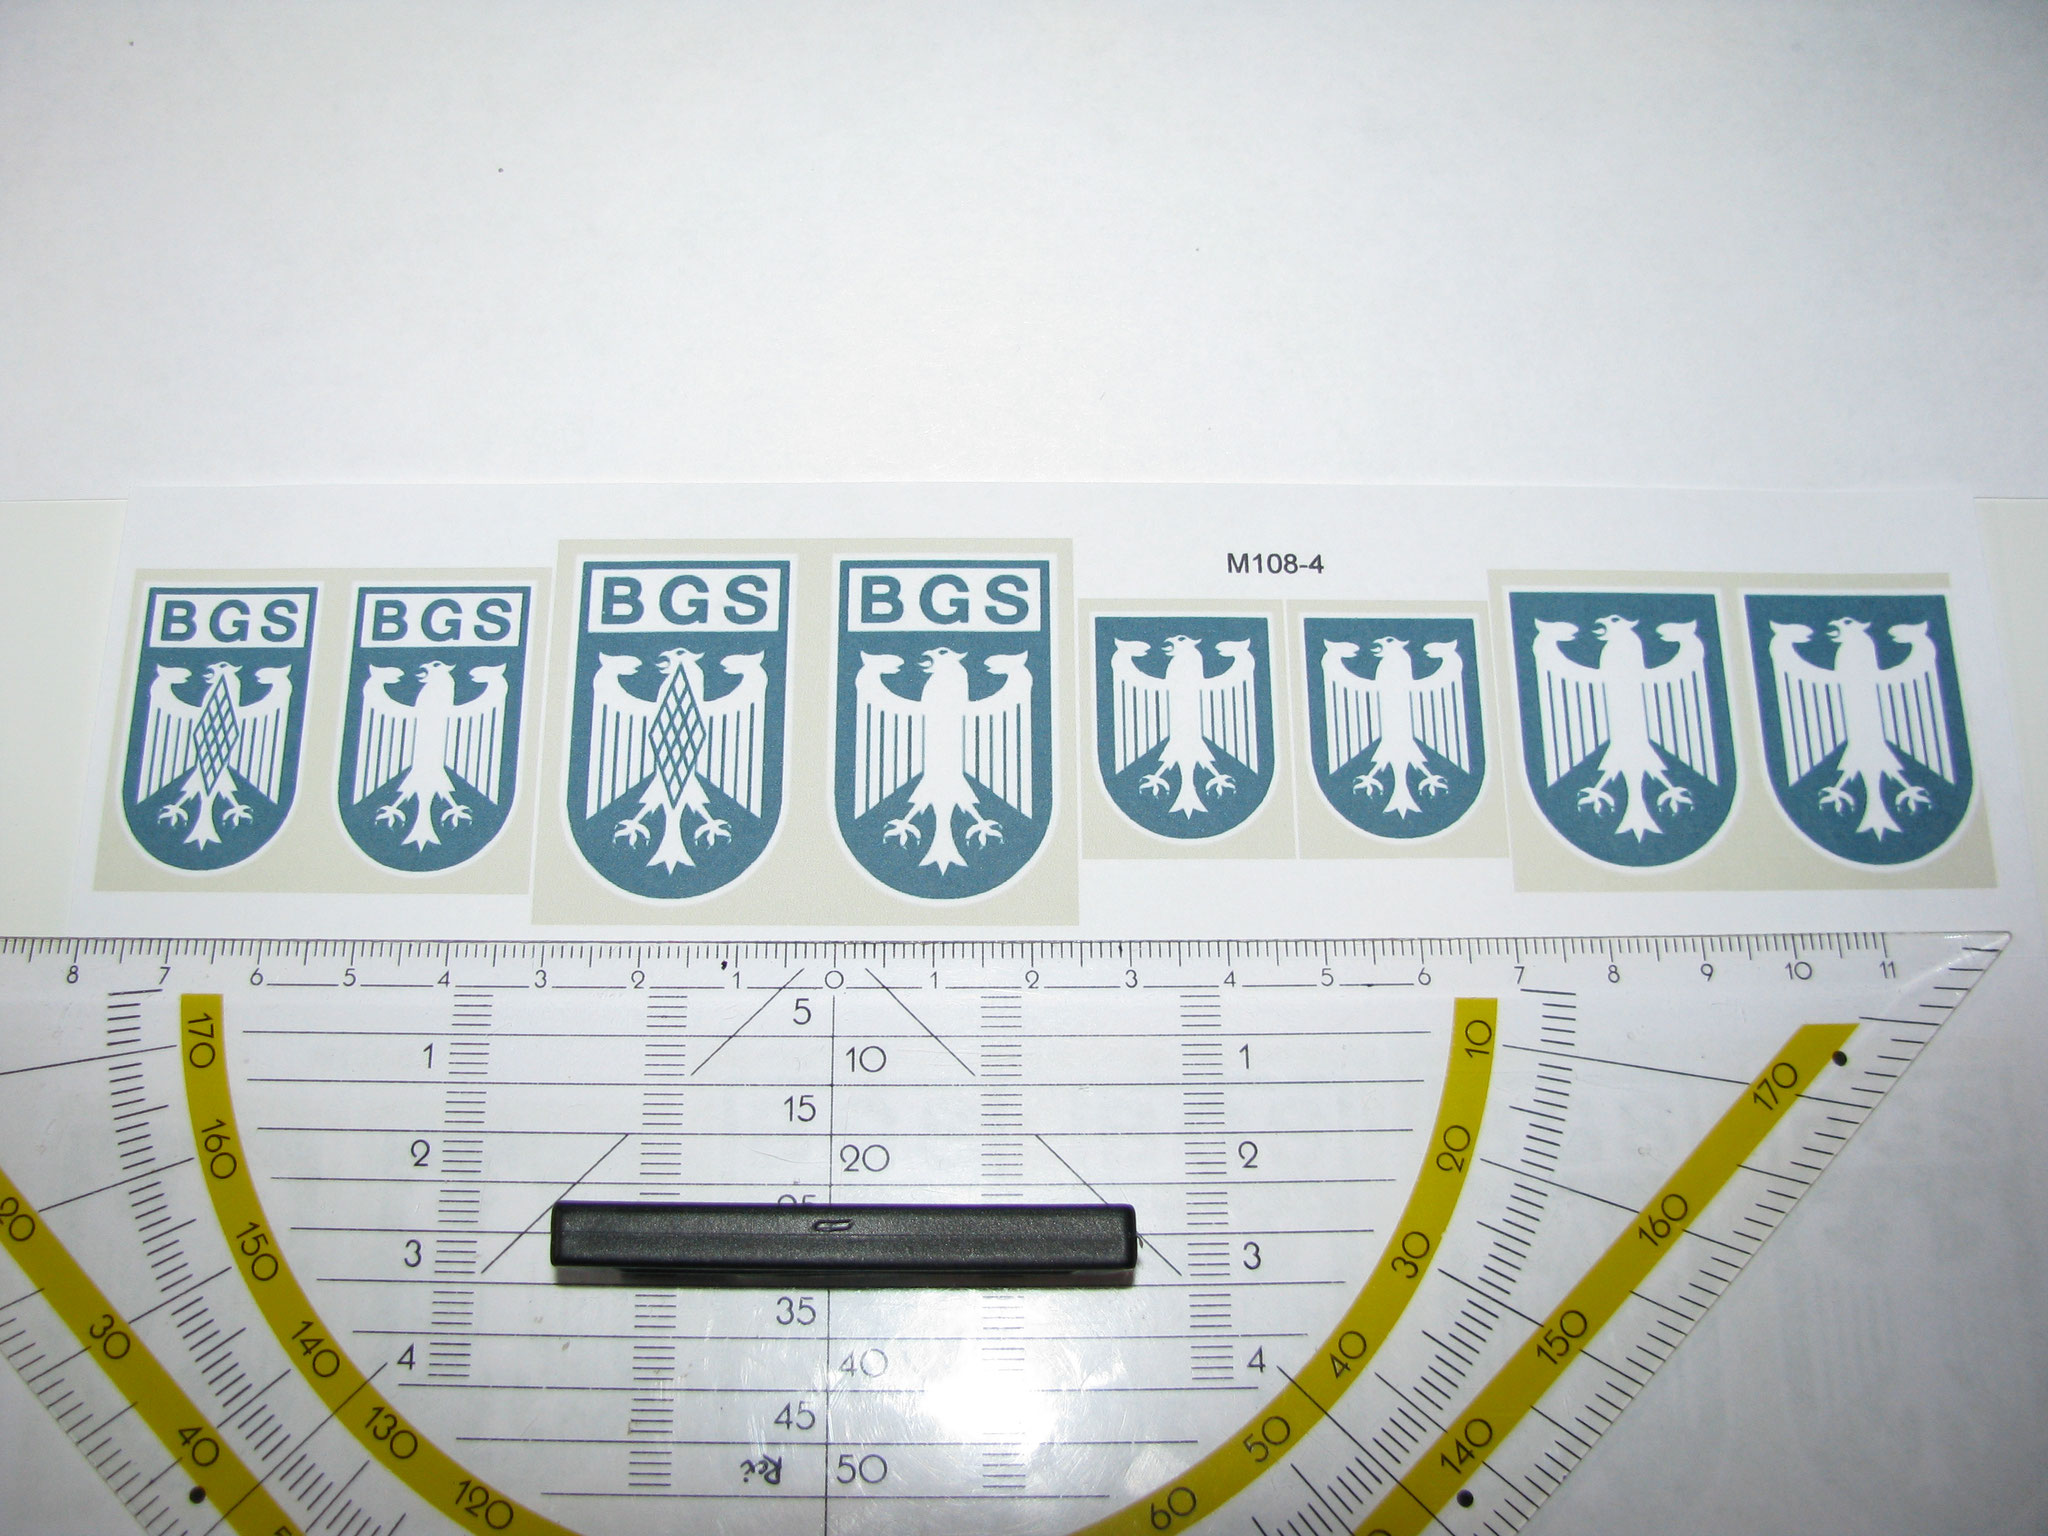 M108-4: BGS. 6 Decals. Max 28x43mm